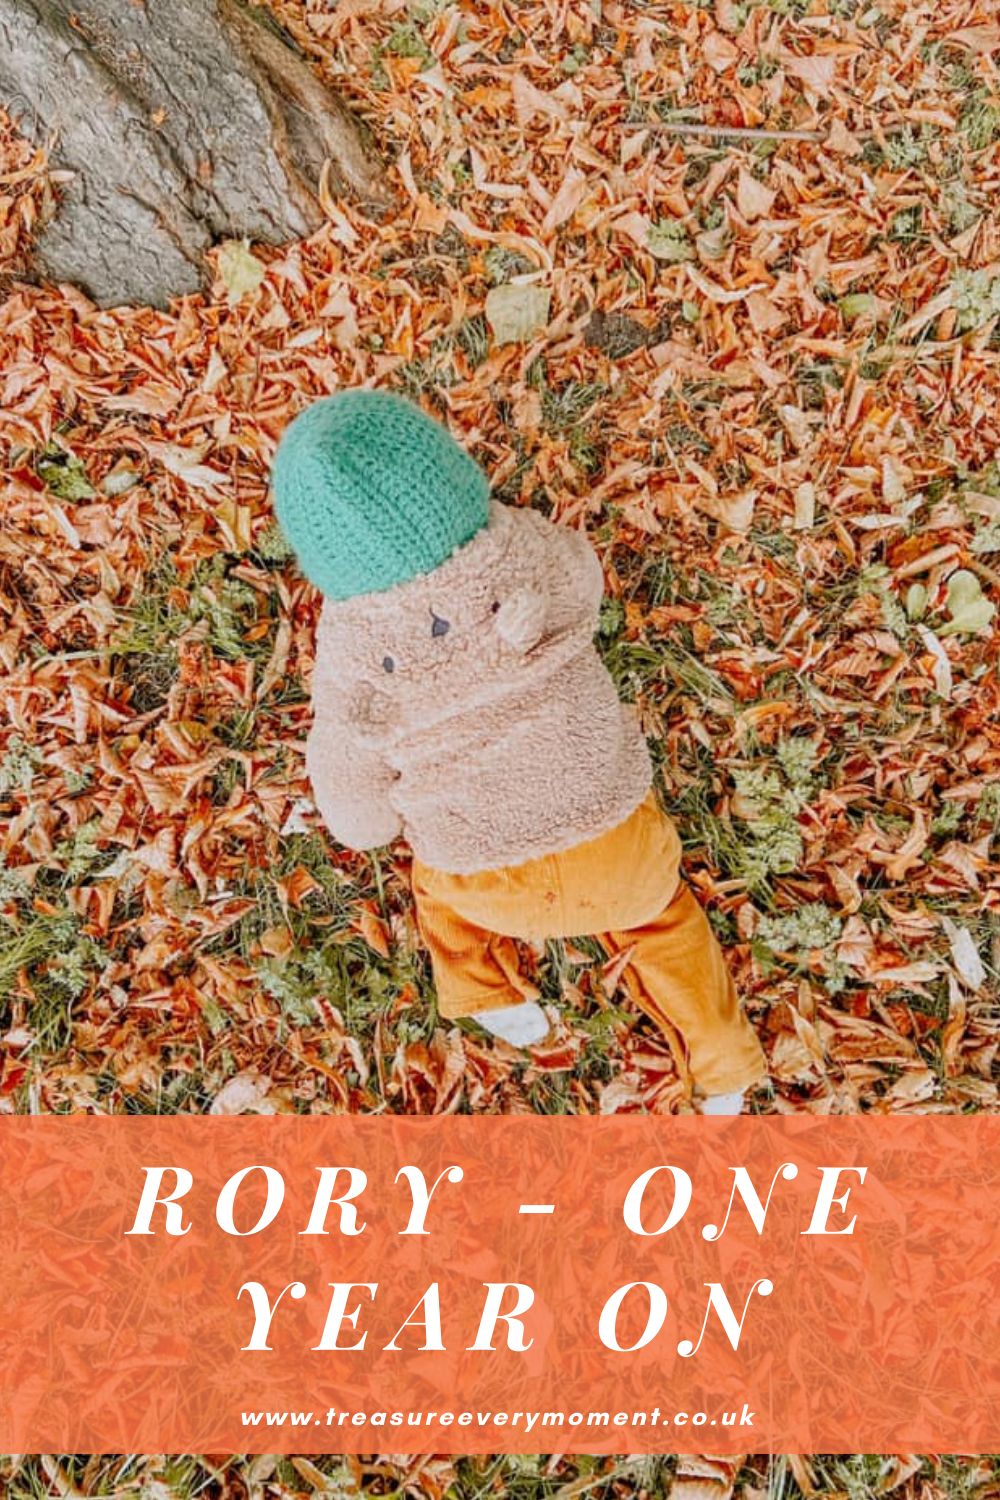 Rory - One Year On